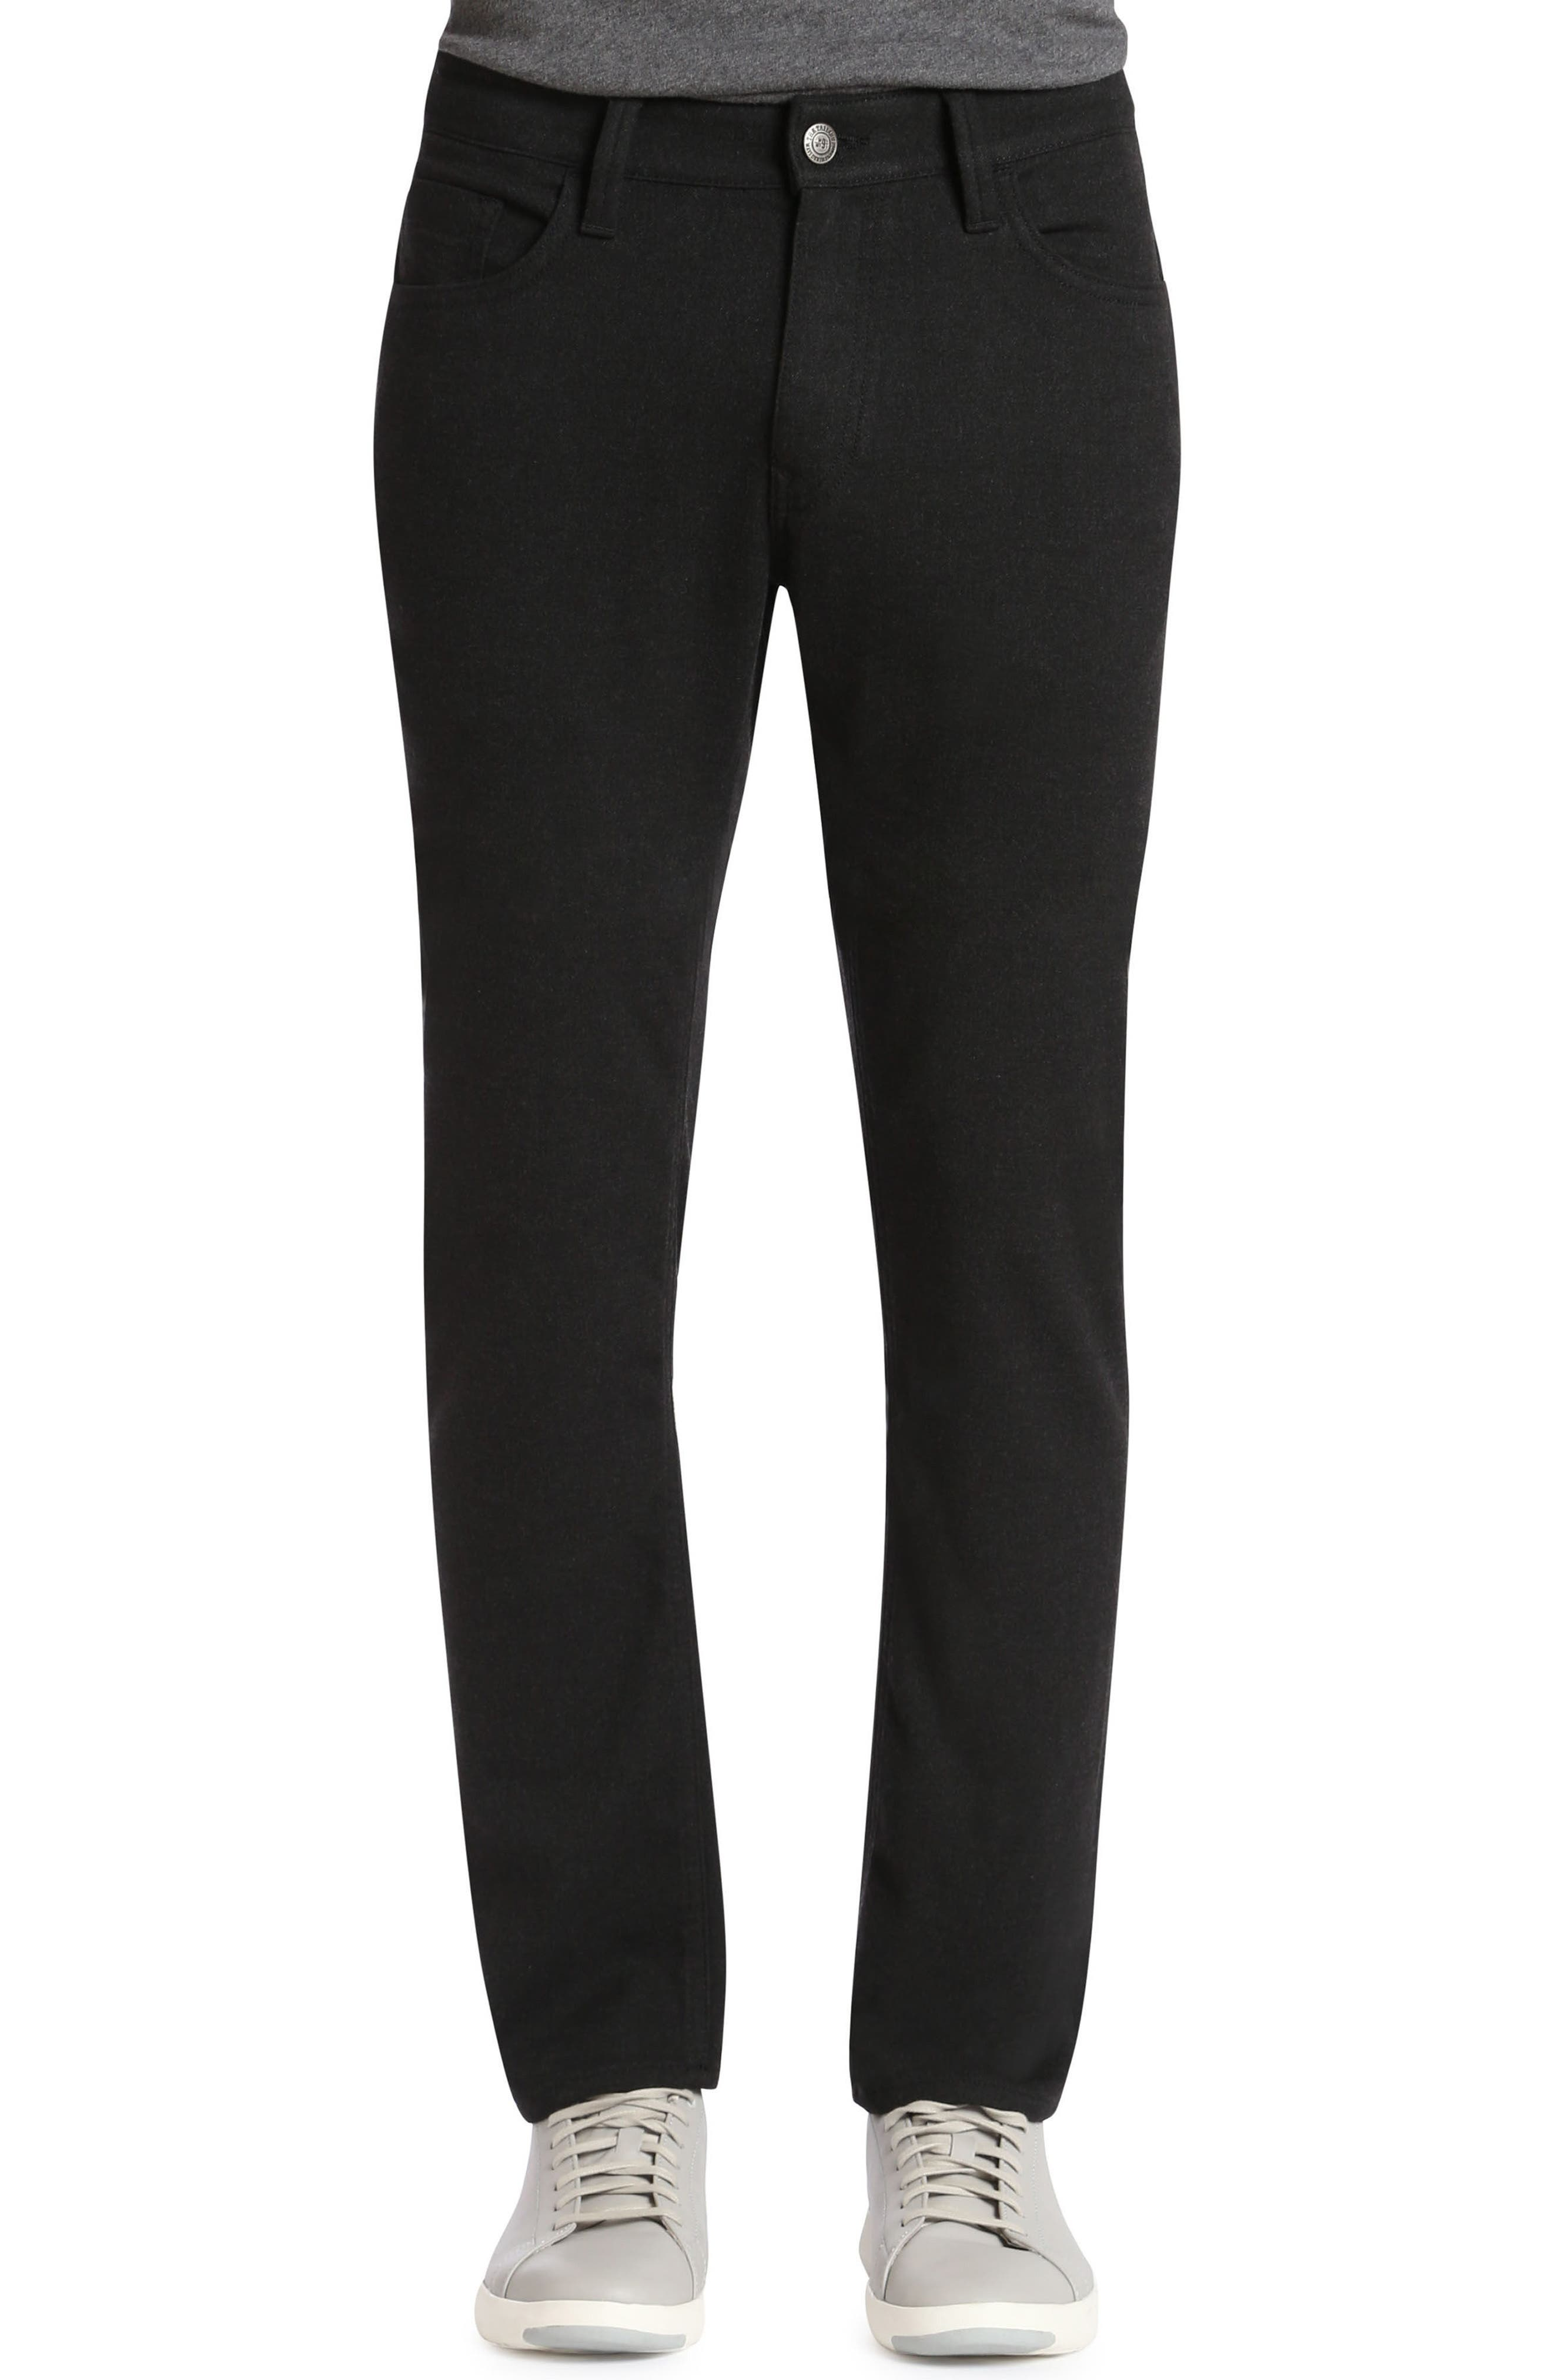 Mavi Jeans Marcus Slim Straight Fit Jeans (Charcoal Feather Tweed)